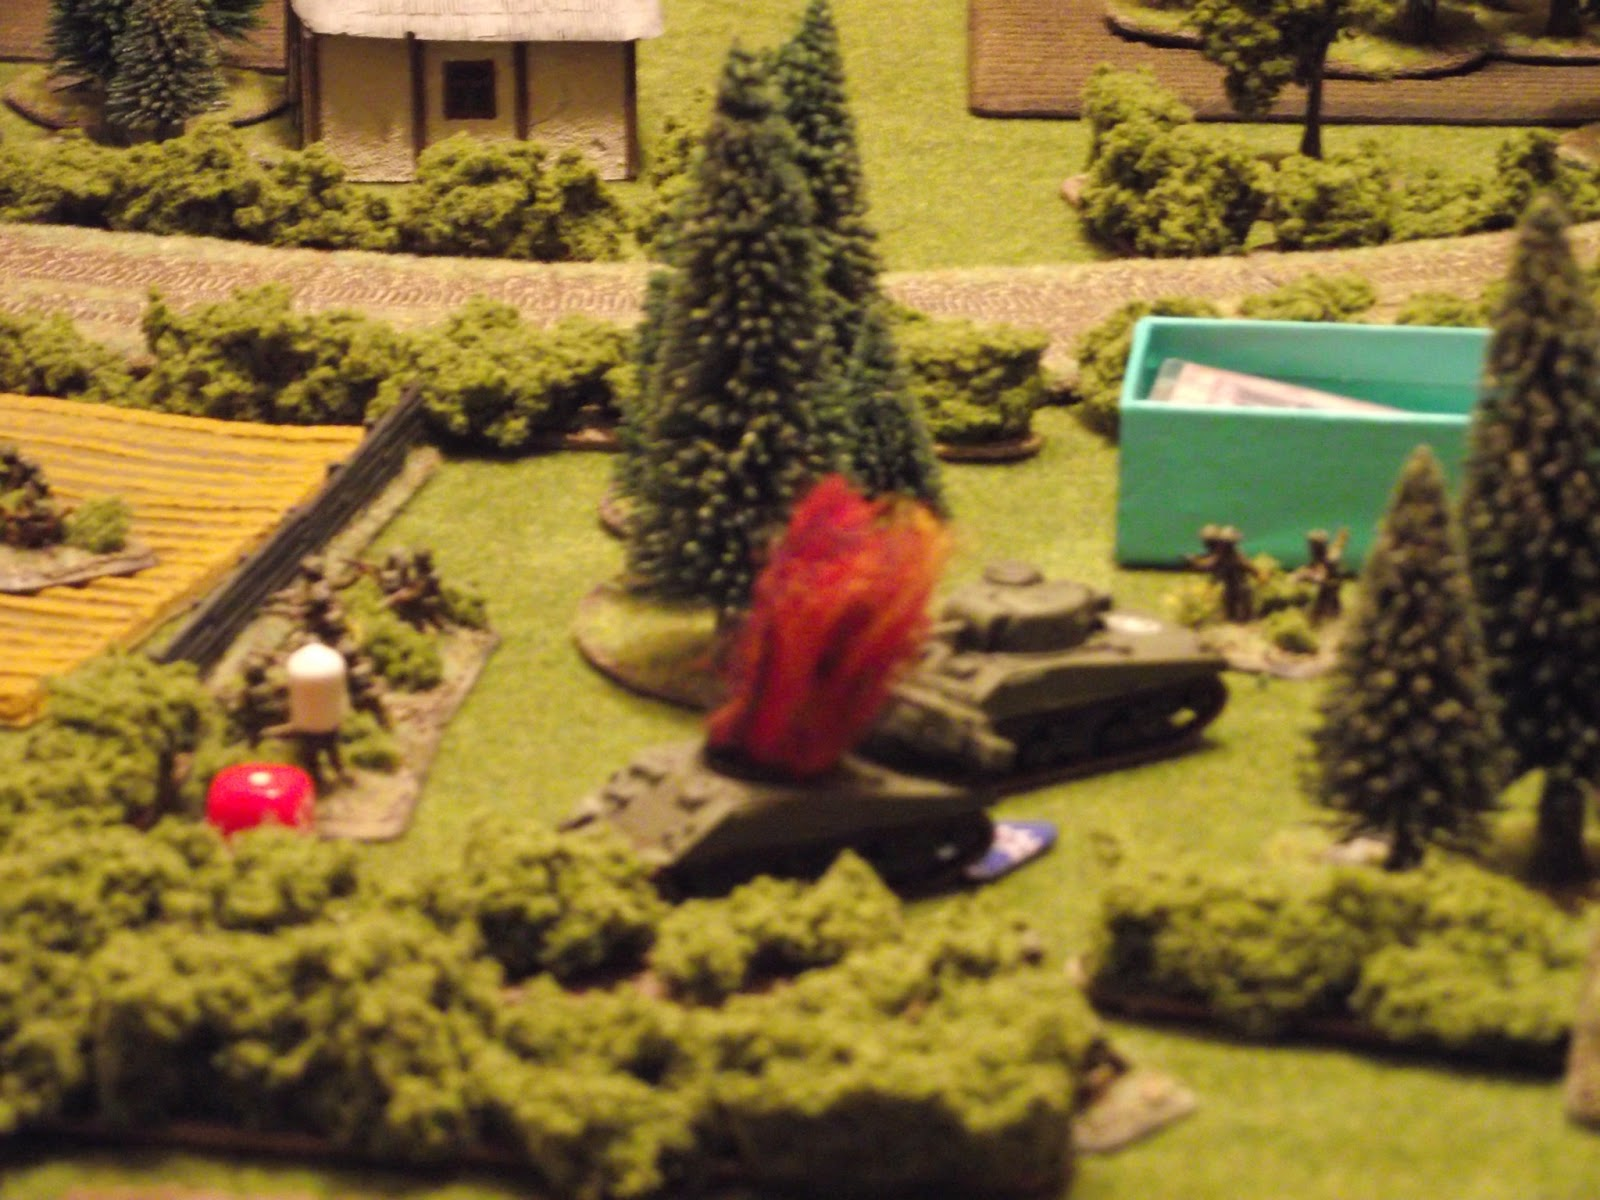 The remaining Sherman backs off, raking the church with MG fire while doing so.